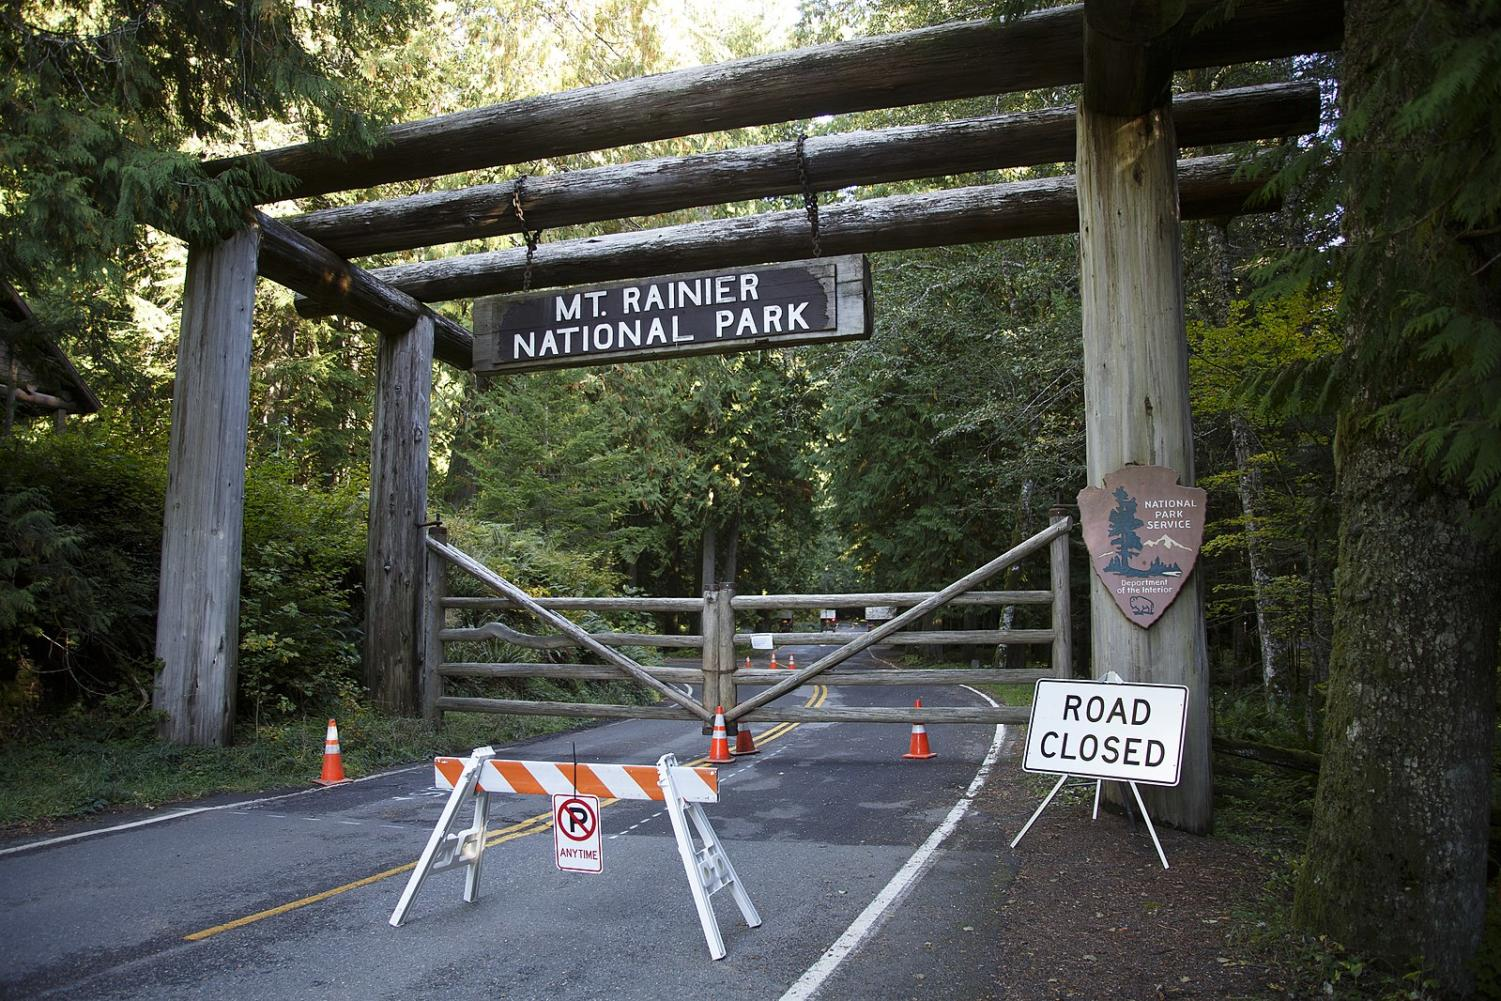 Mt. Rainier National Park in Washington was one of the numerous national parks across the country that were neglected due to lack of funding during the government shutdown.